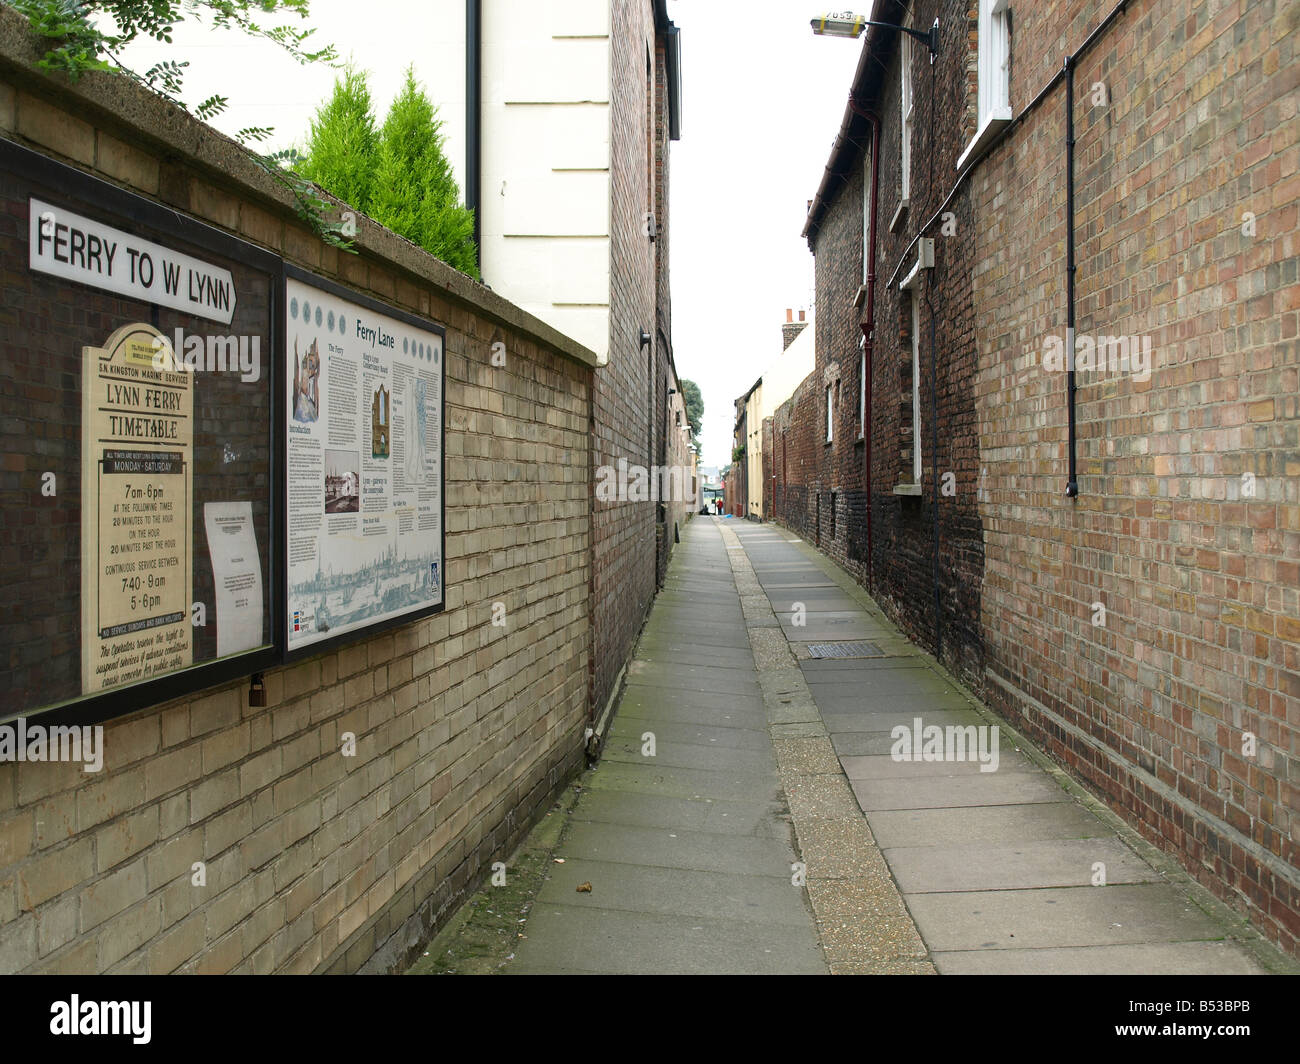 Ferry lane,leading to the ferry boat to west lynn on the great river ouse,Kings Lynn,Norfolk,East Anglia,uk. Stock Photo